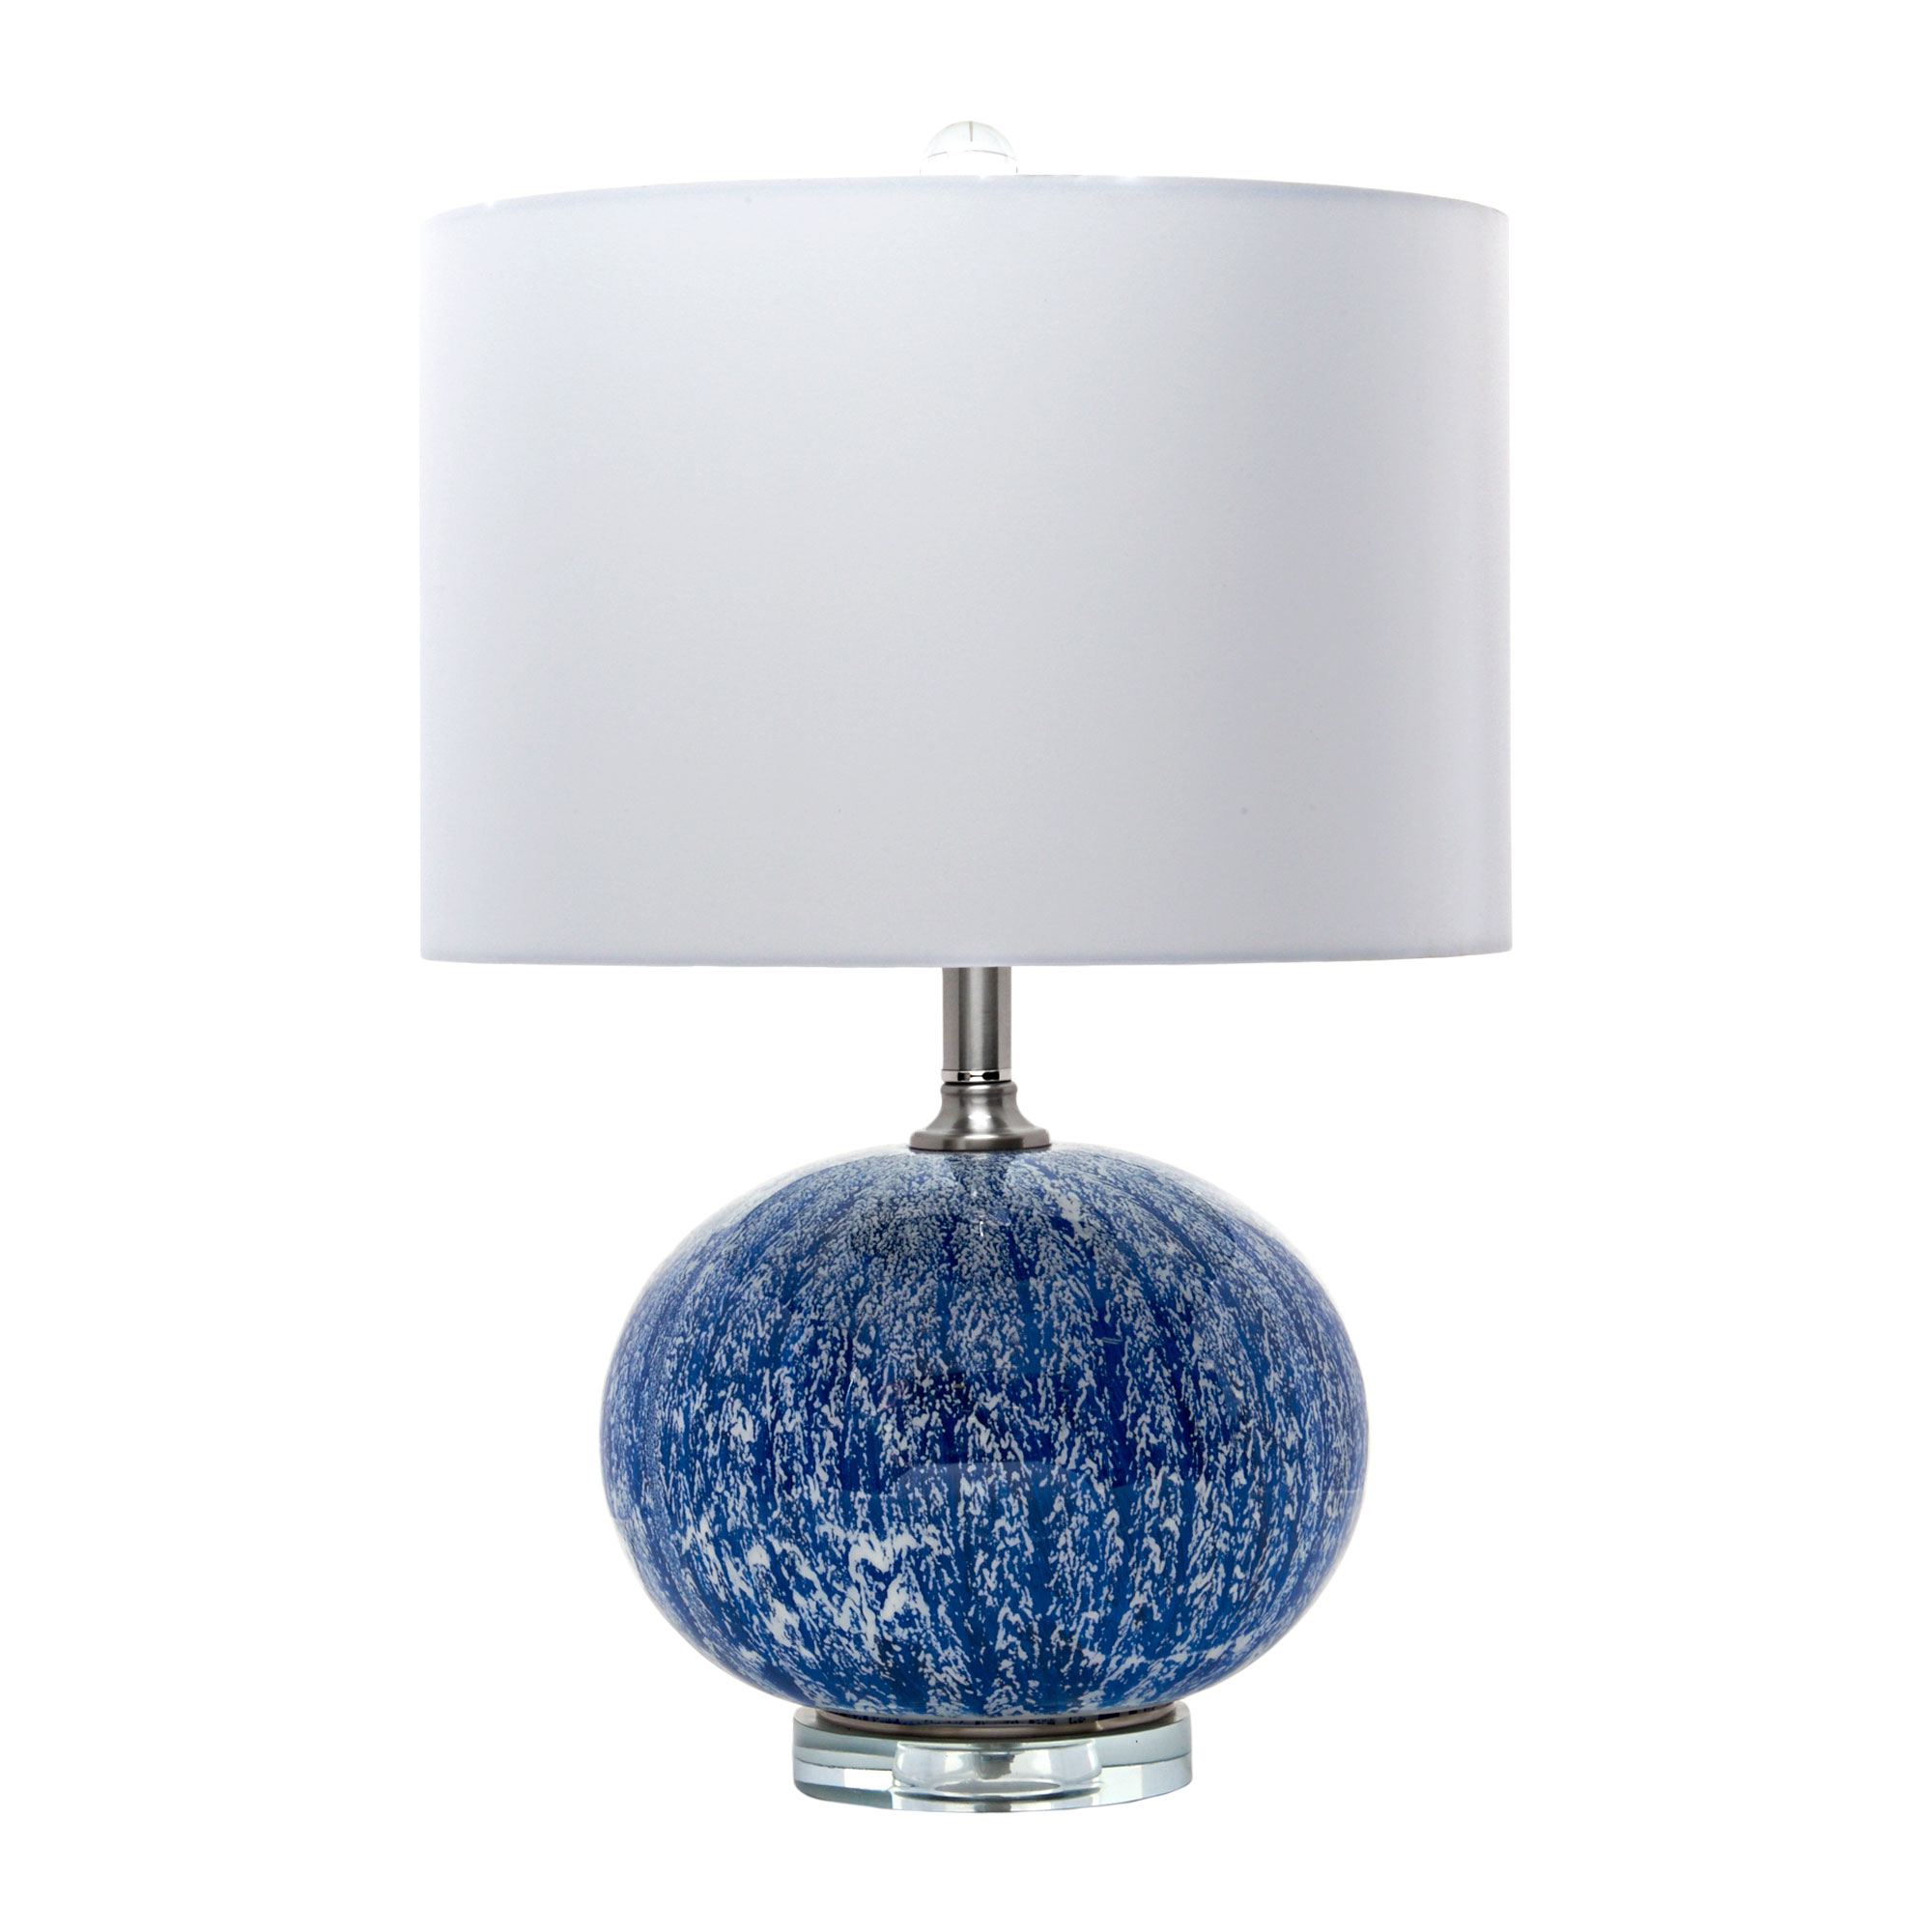 Gordmans Table Lamps: Gordmans lamps – select magnificence and layout that fits your personality,Lighting